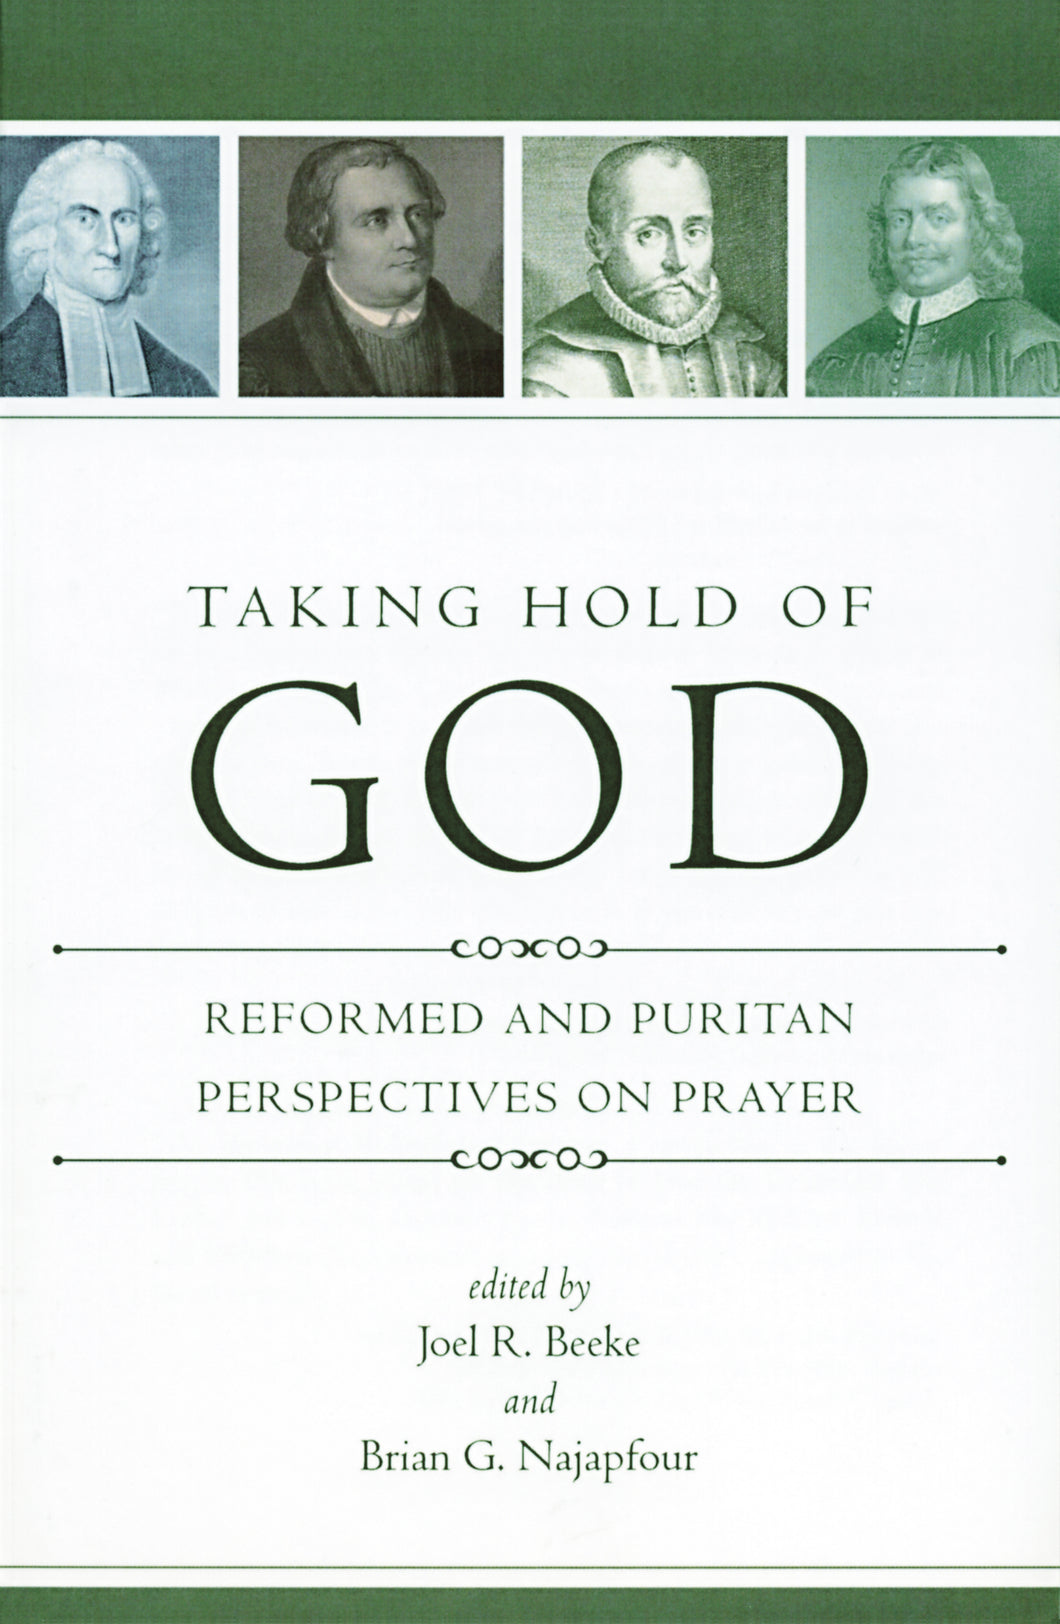 Taking Hold of God: Reformed and Puritan Perspectives on Prayer — Paperback